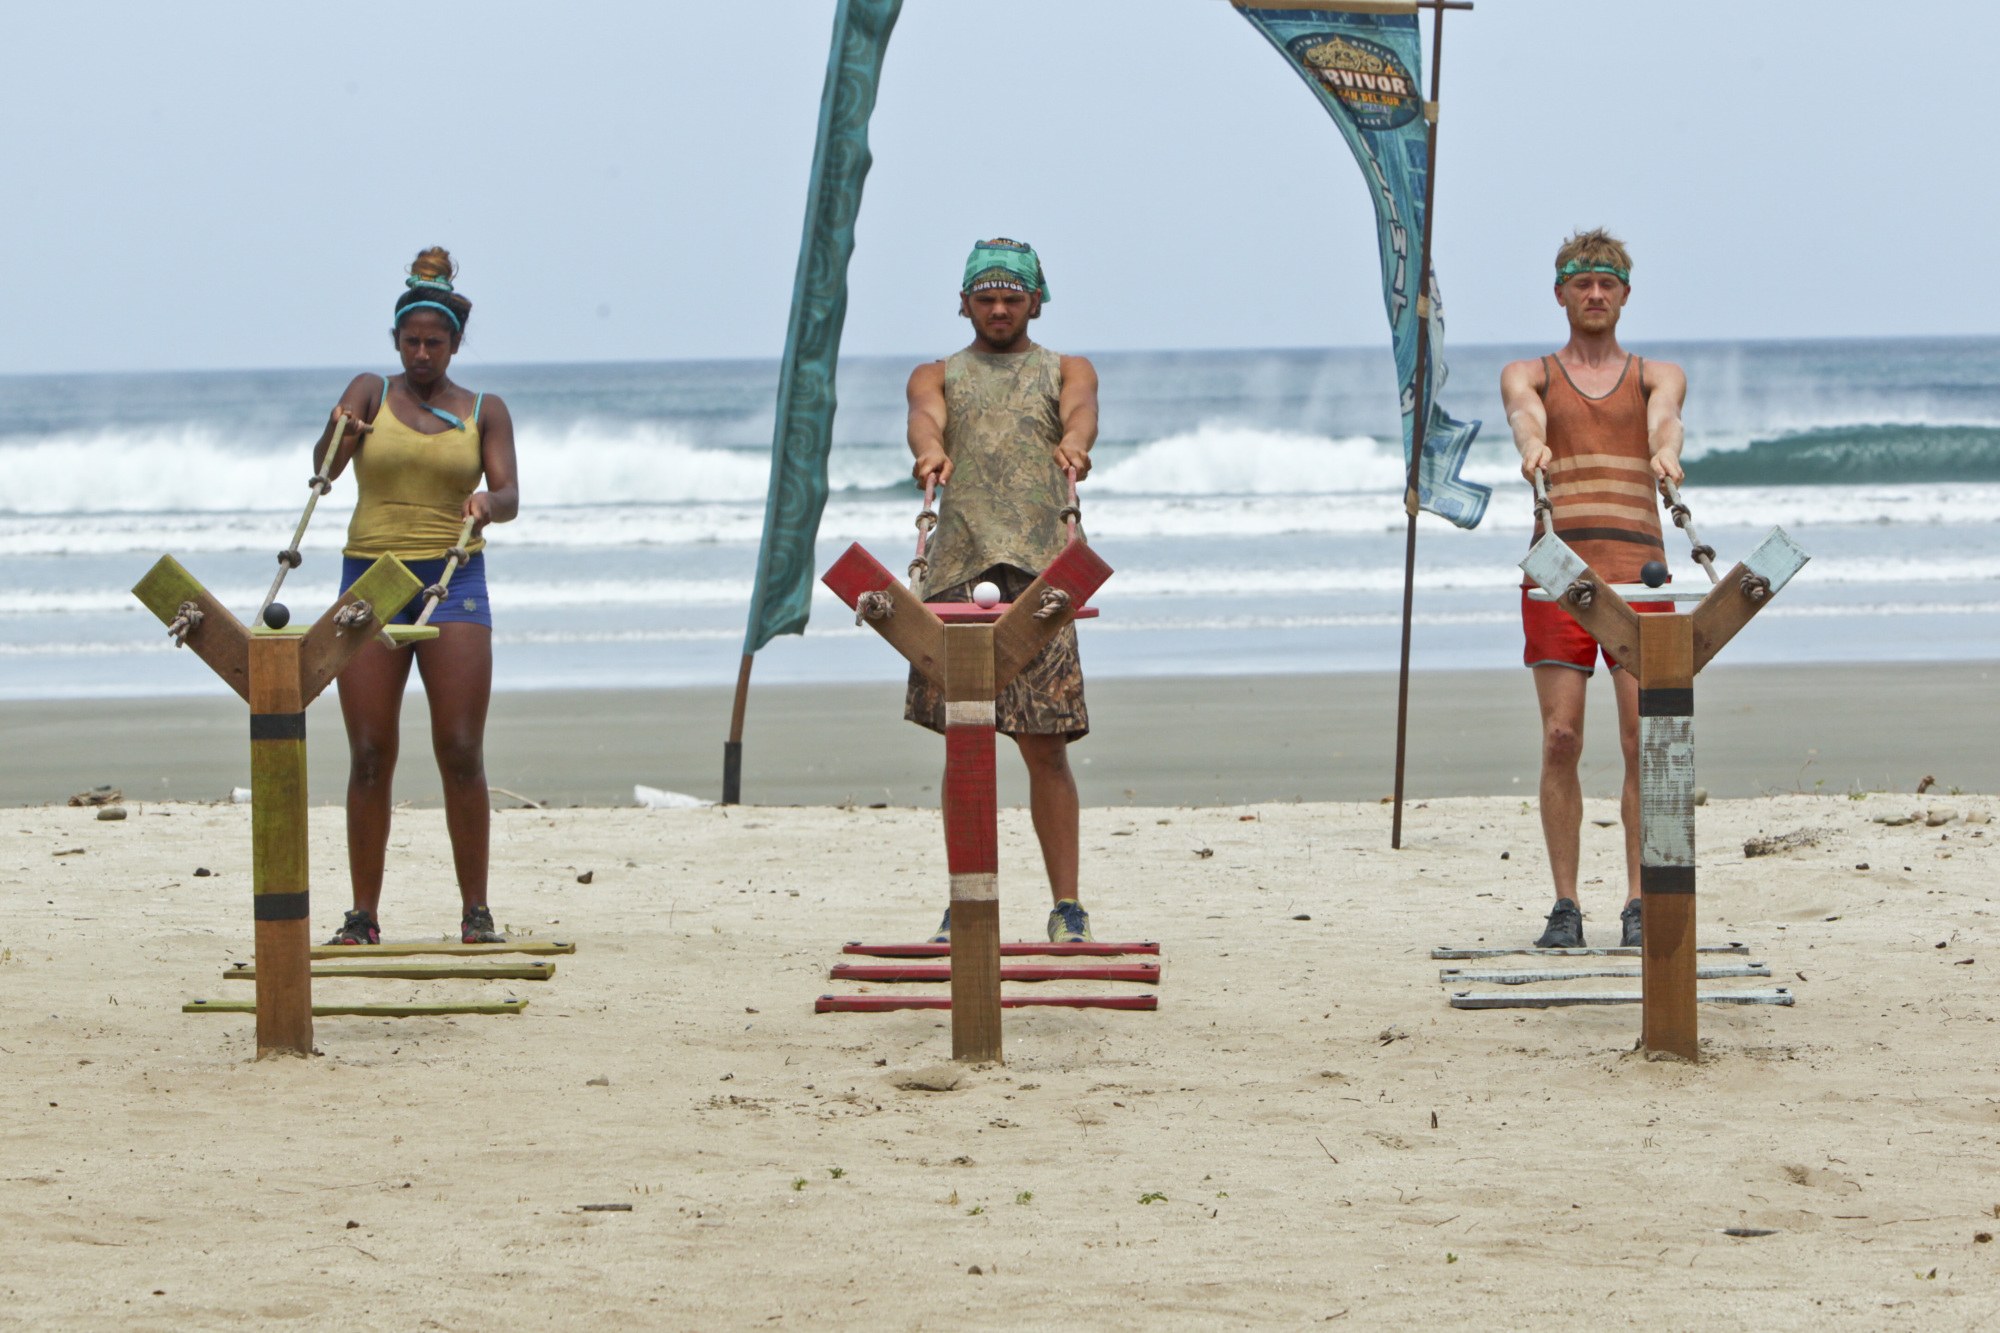 Natalie, Wes and Josh compete